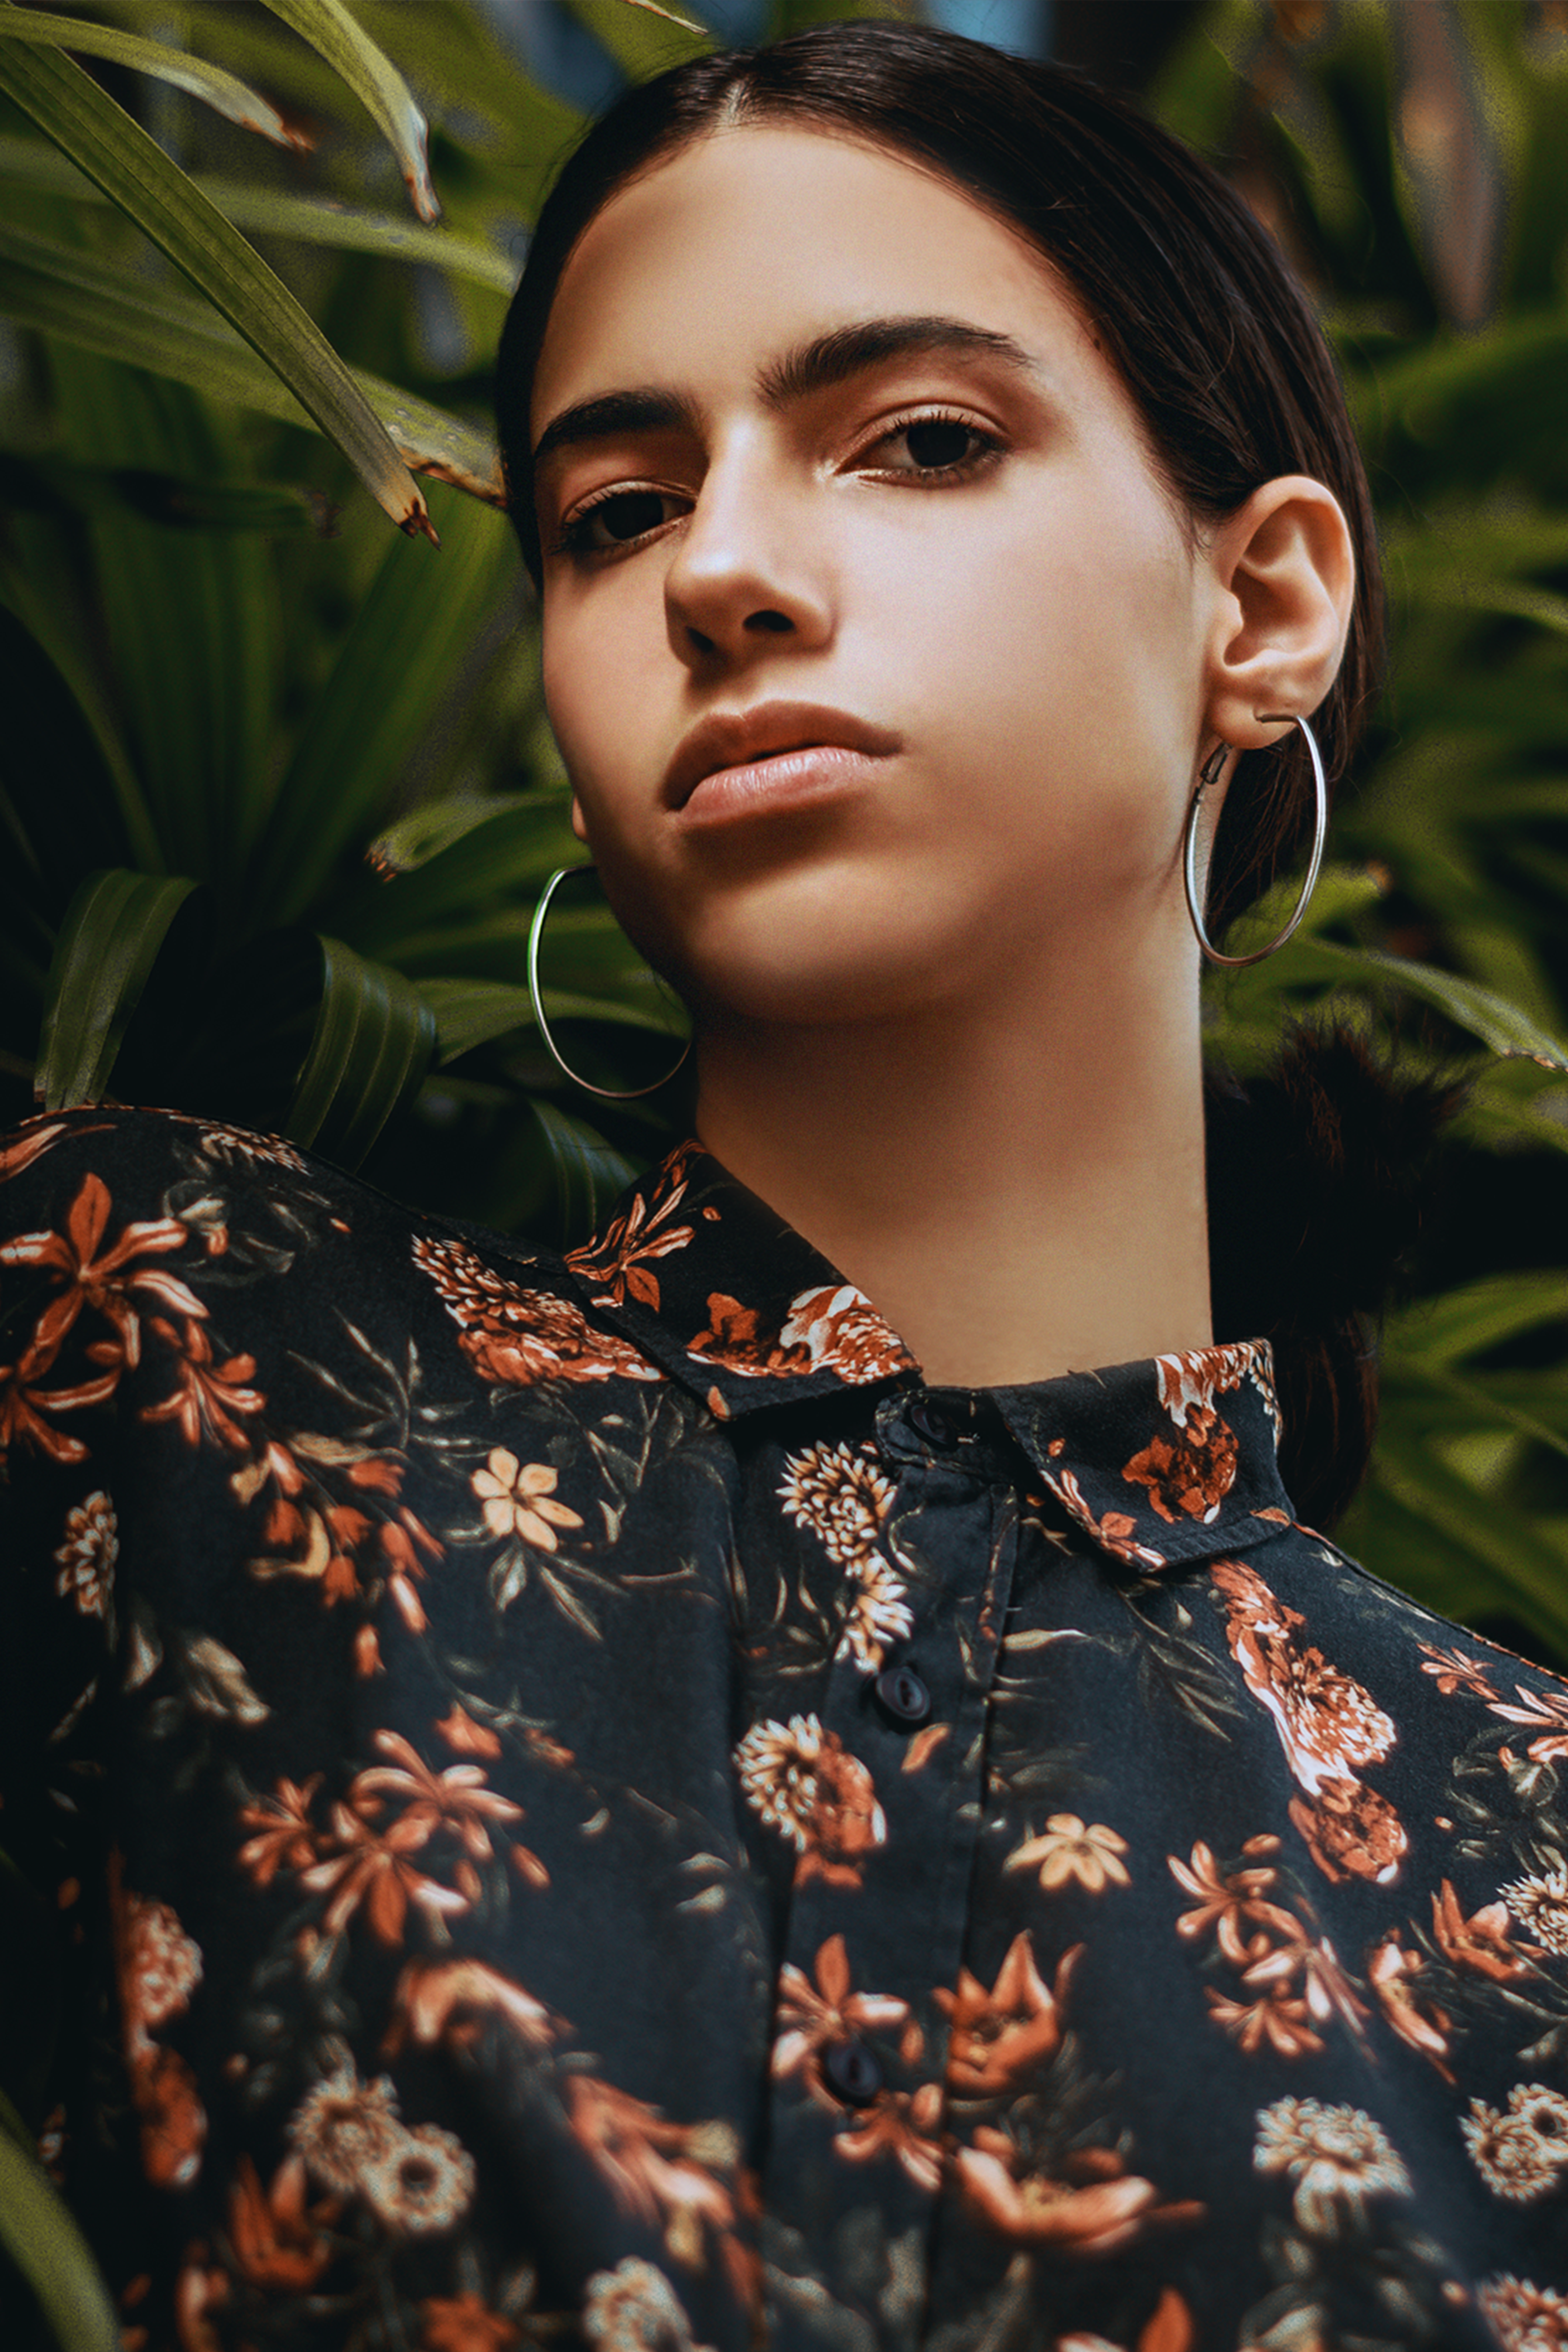 Woman Wearing Black and Multicolored Floral Blouse Near Green Leaf Plant